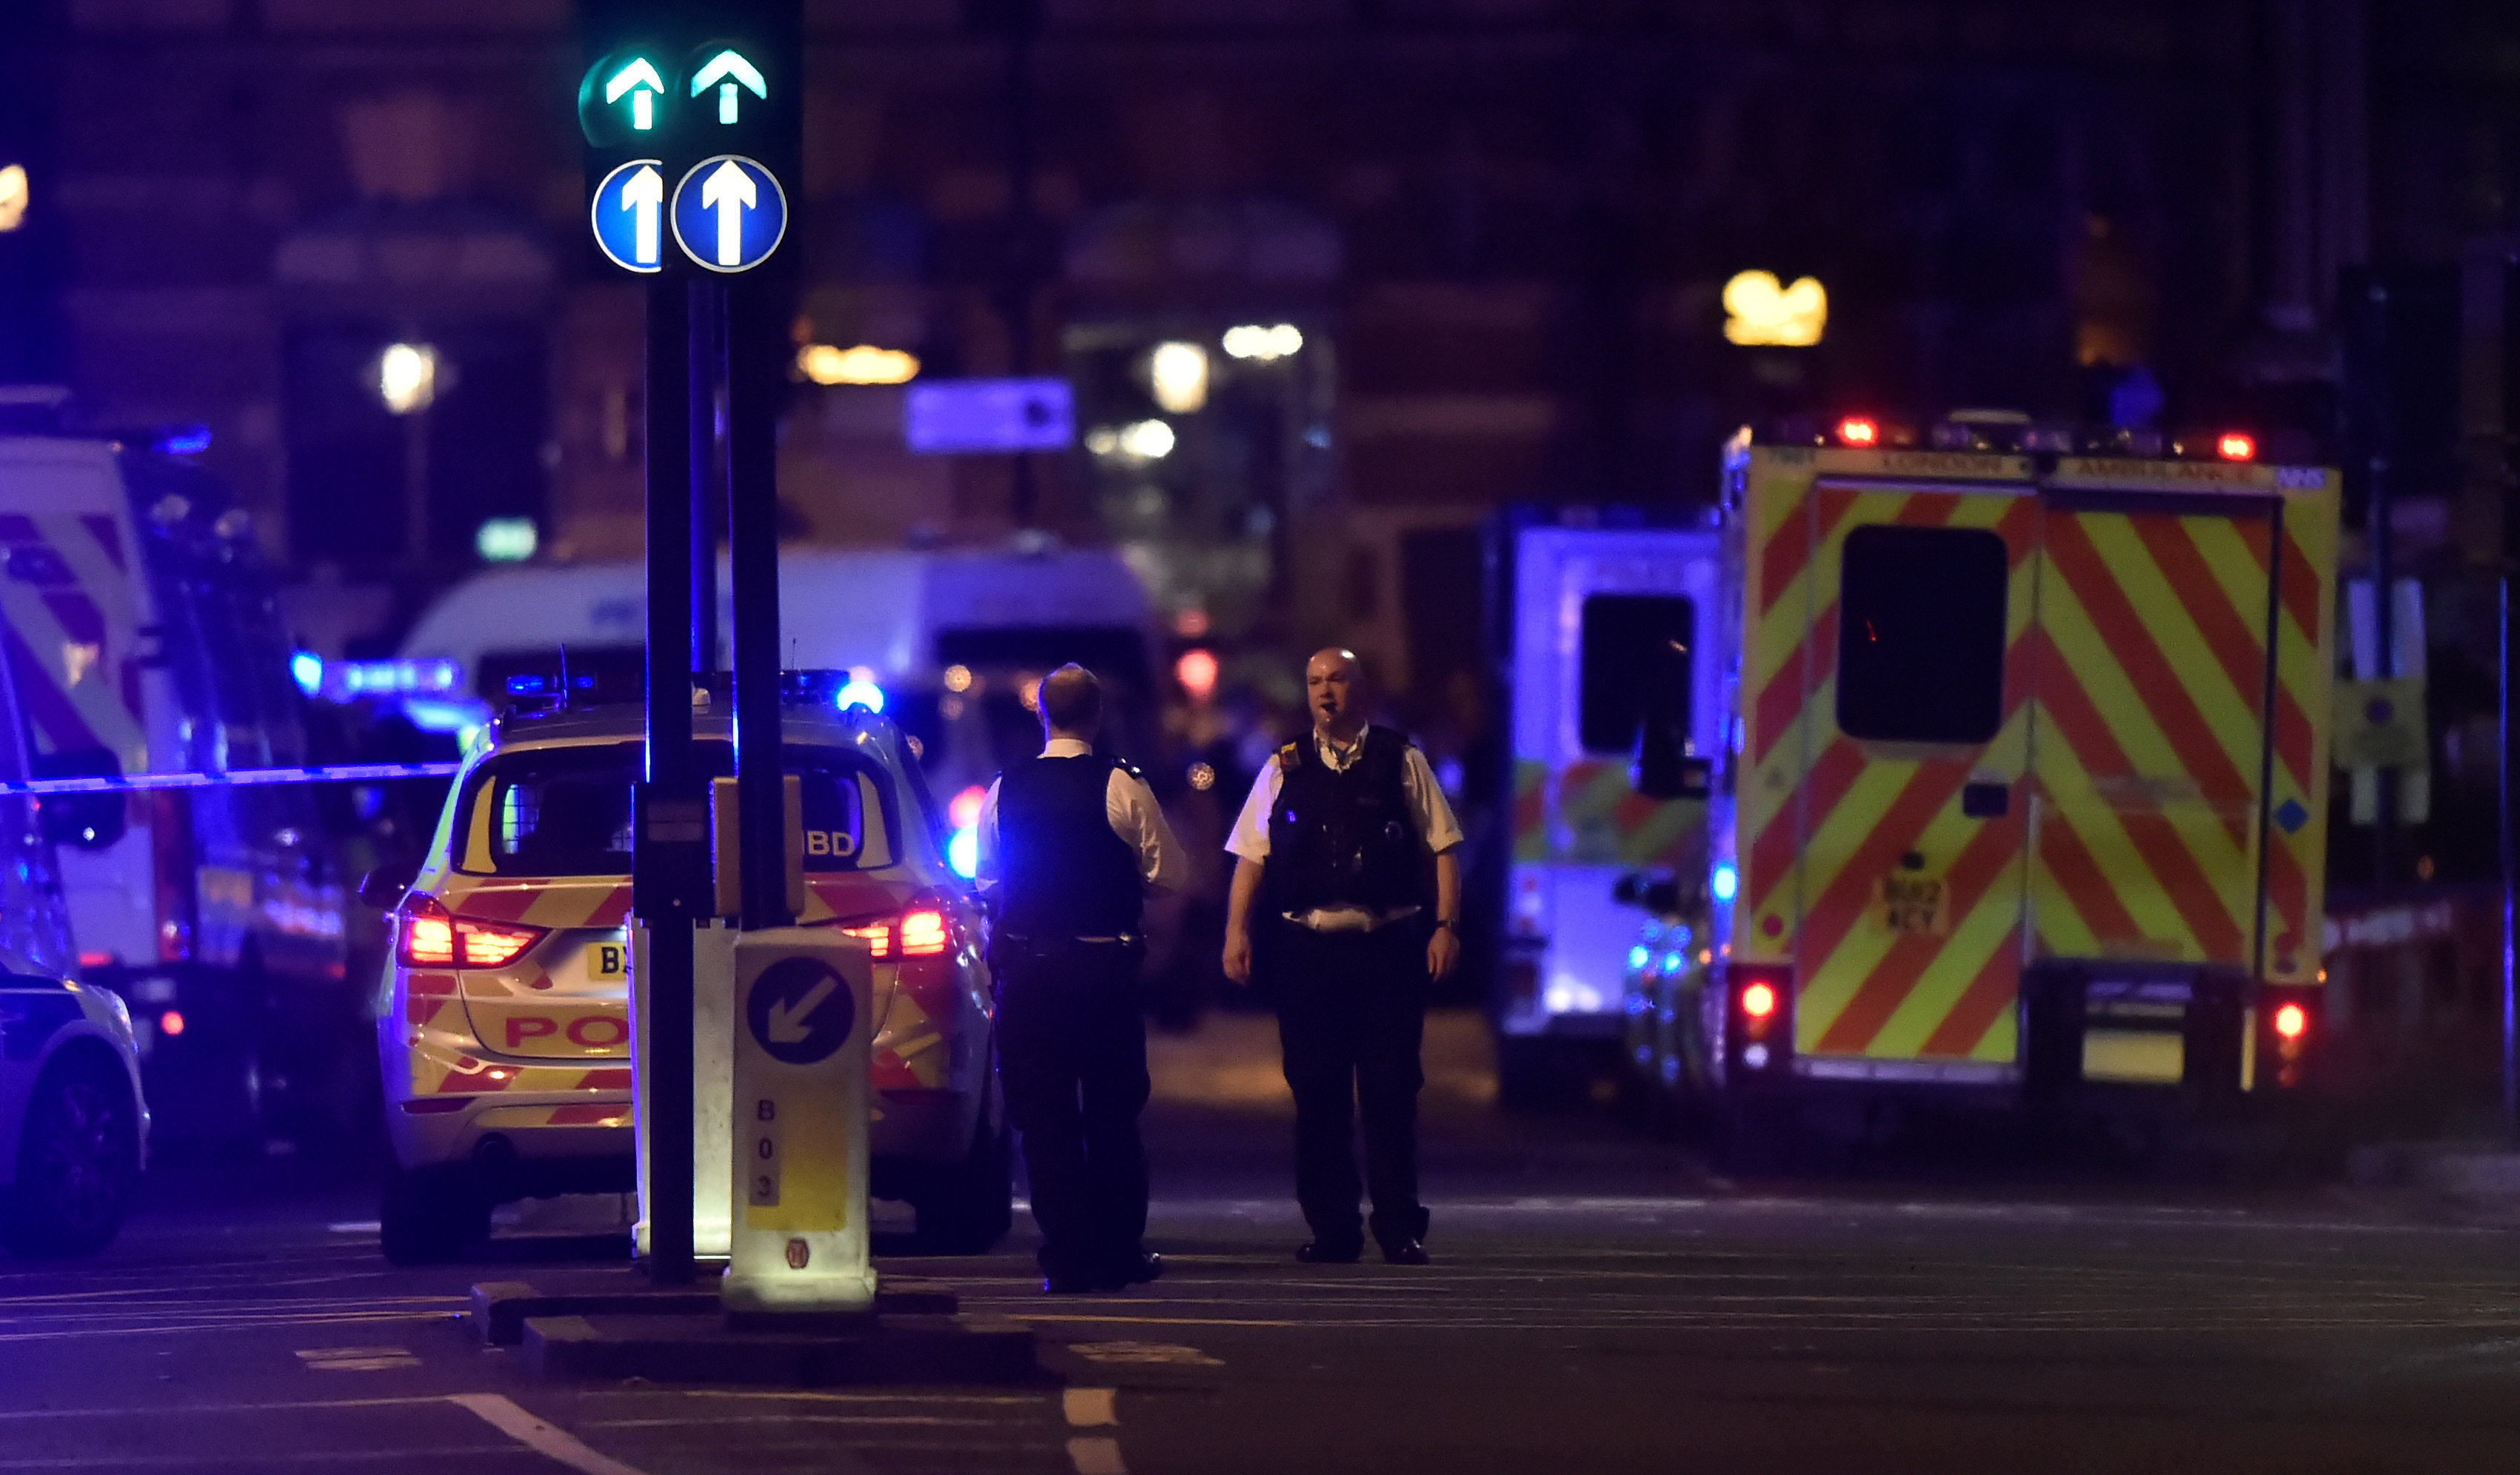 Police attend to an incident on London Bridge in London, Britain, June 3, 2017. Reuters / Hannah McKay